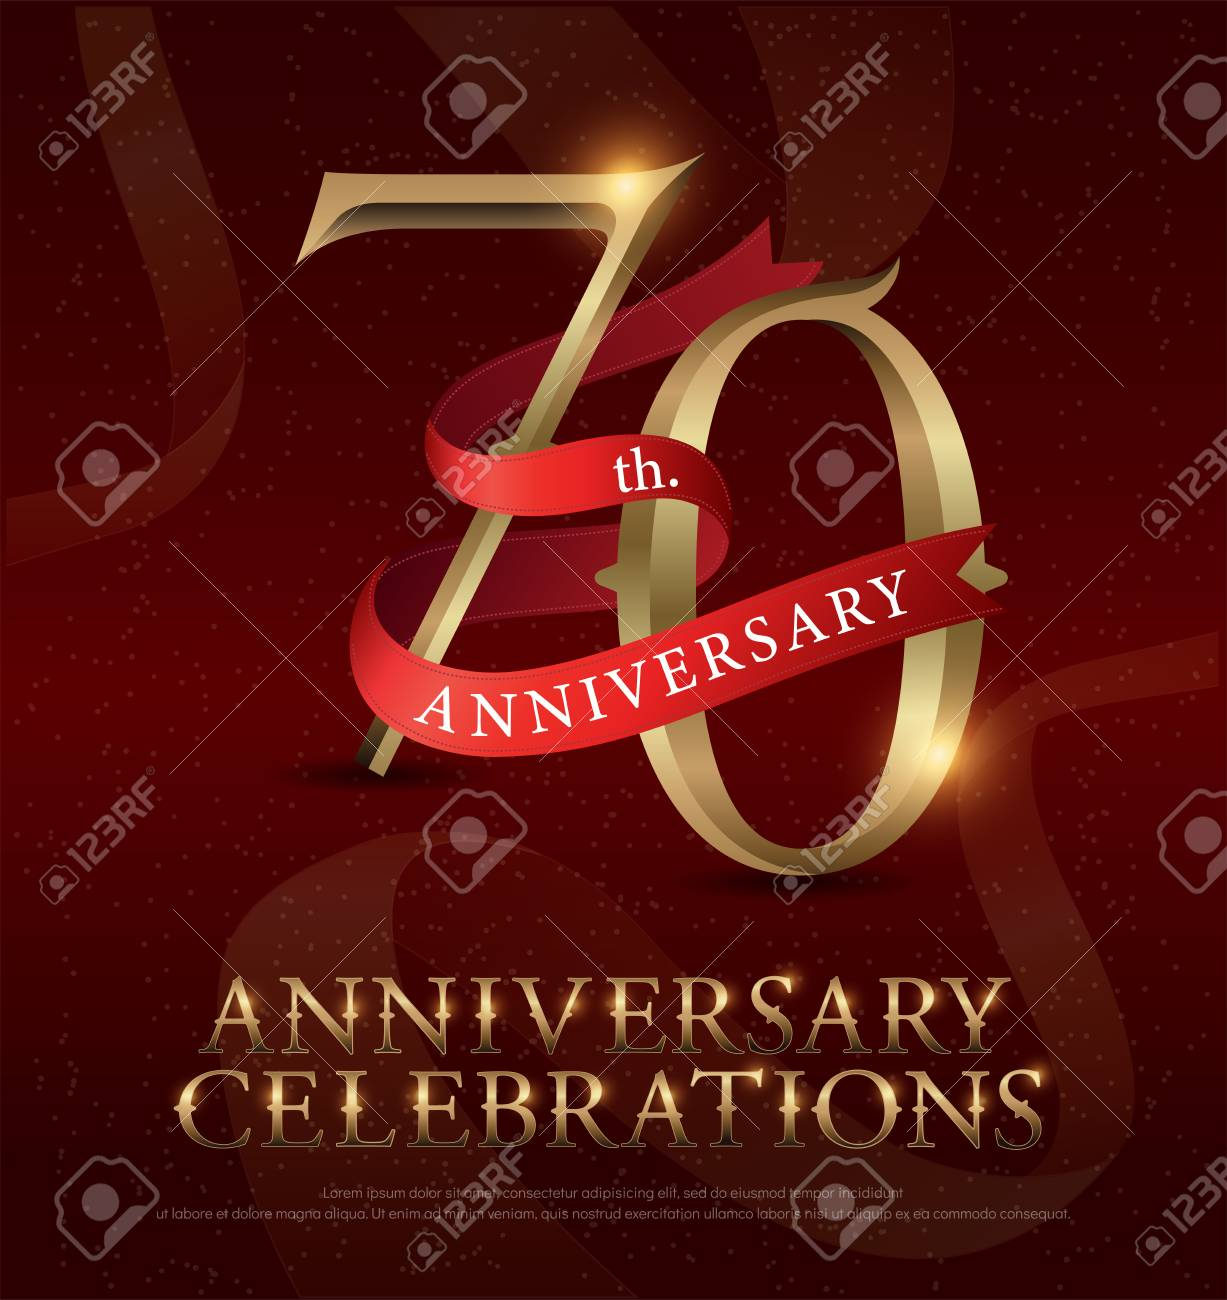 70th years anniversary celebration golden logo with red ribbon on red background. vector illustrator - 92653340